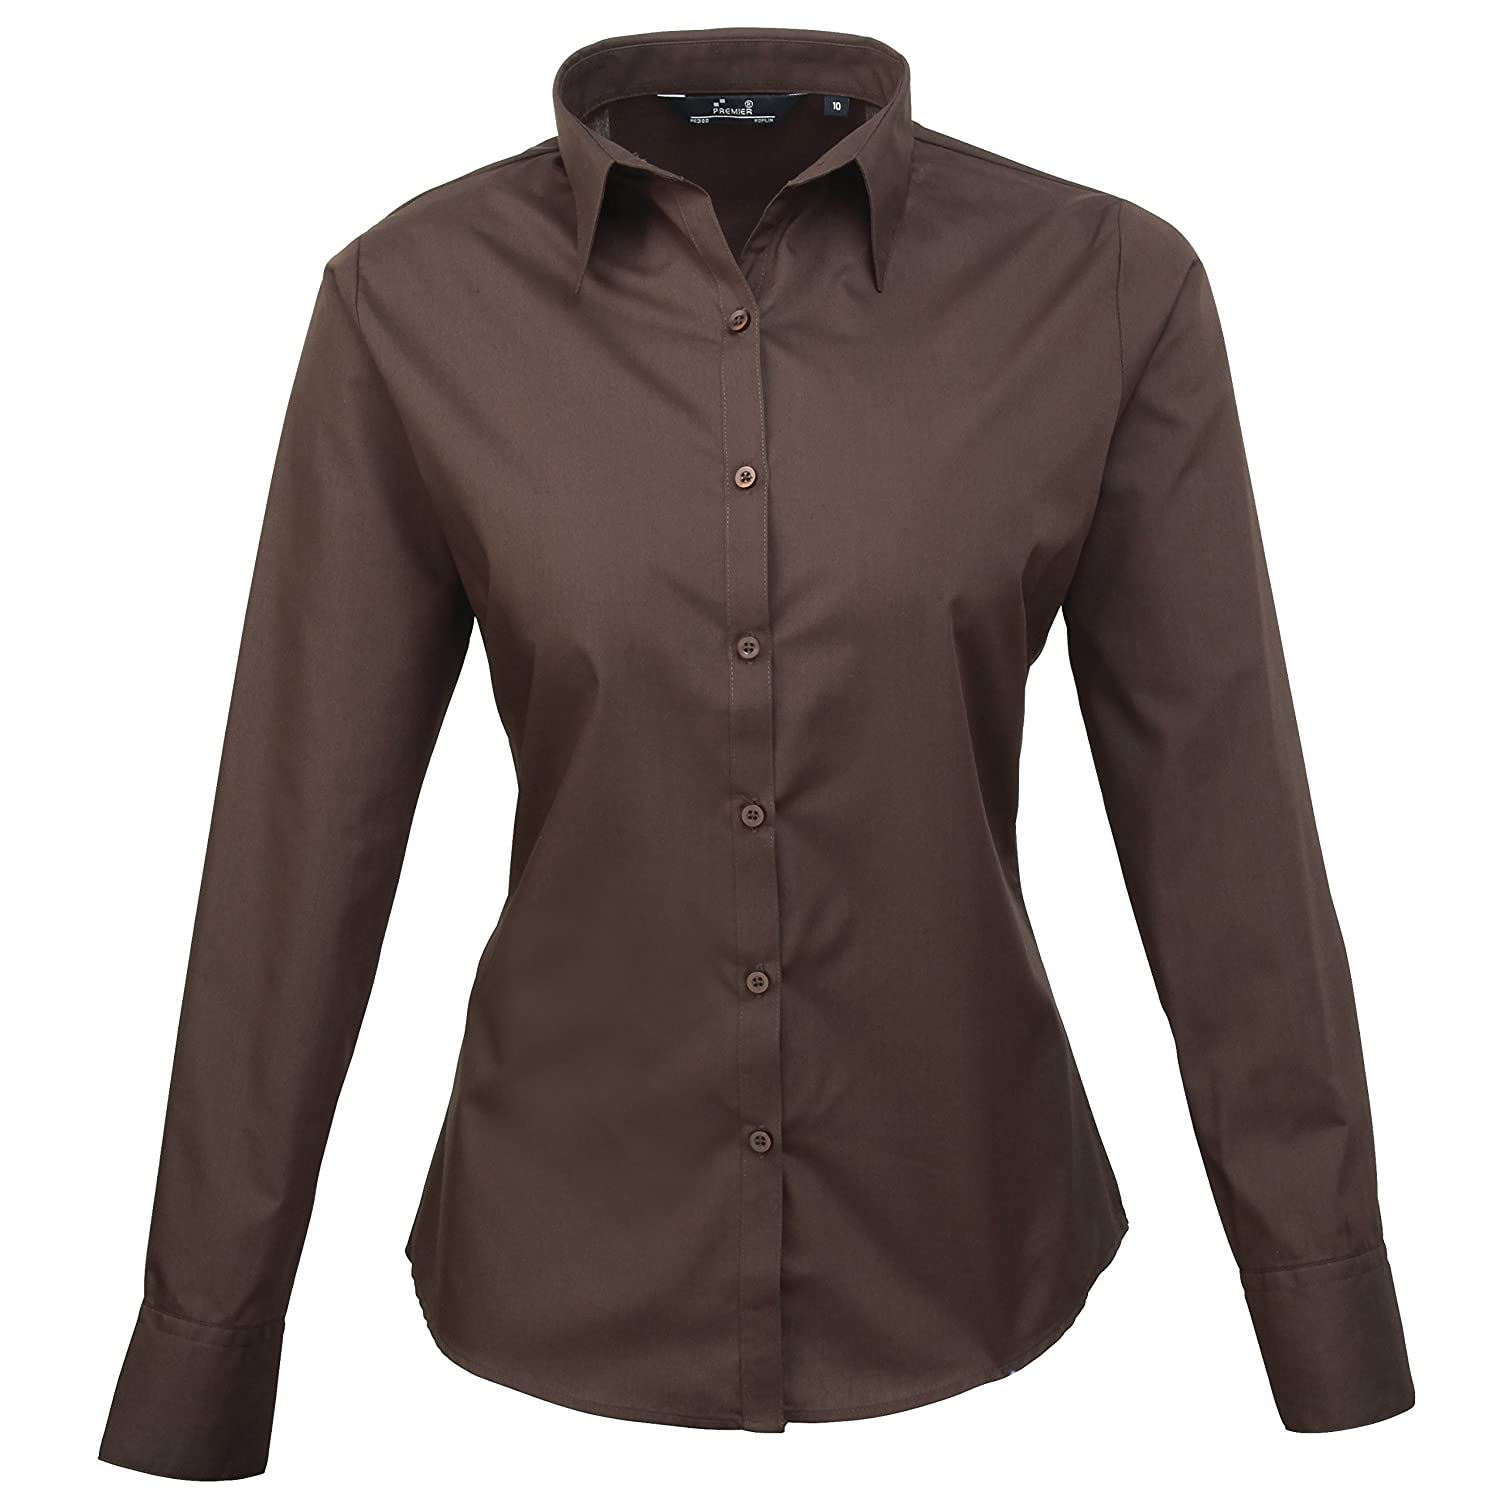 Premier Women's Soft Collar Styling Poplin Long Sleeve Blouse Shirts 6-30